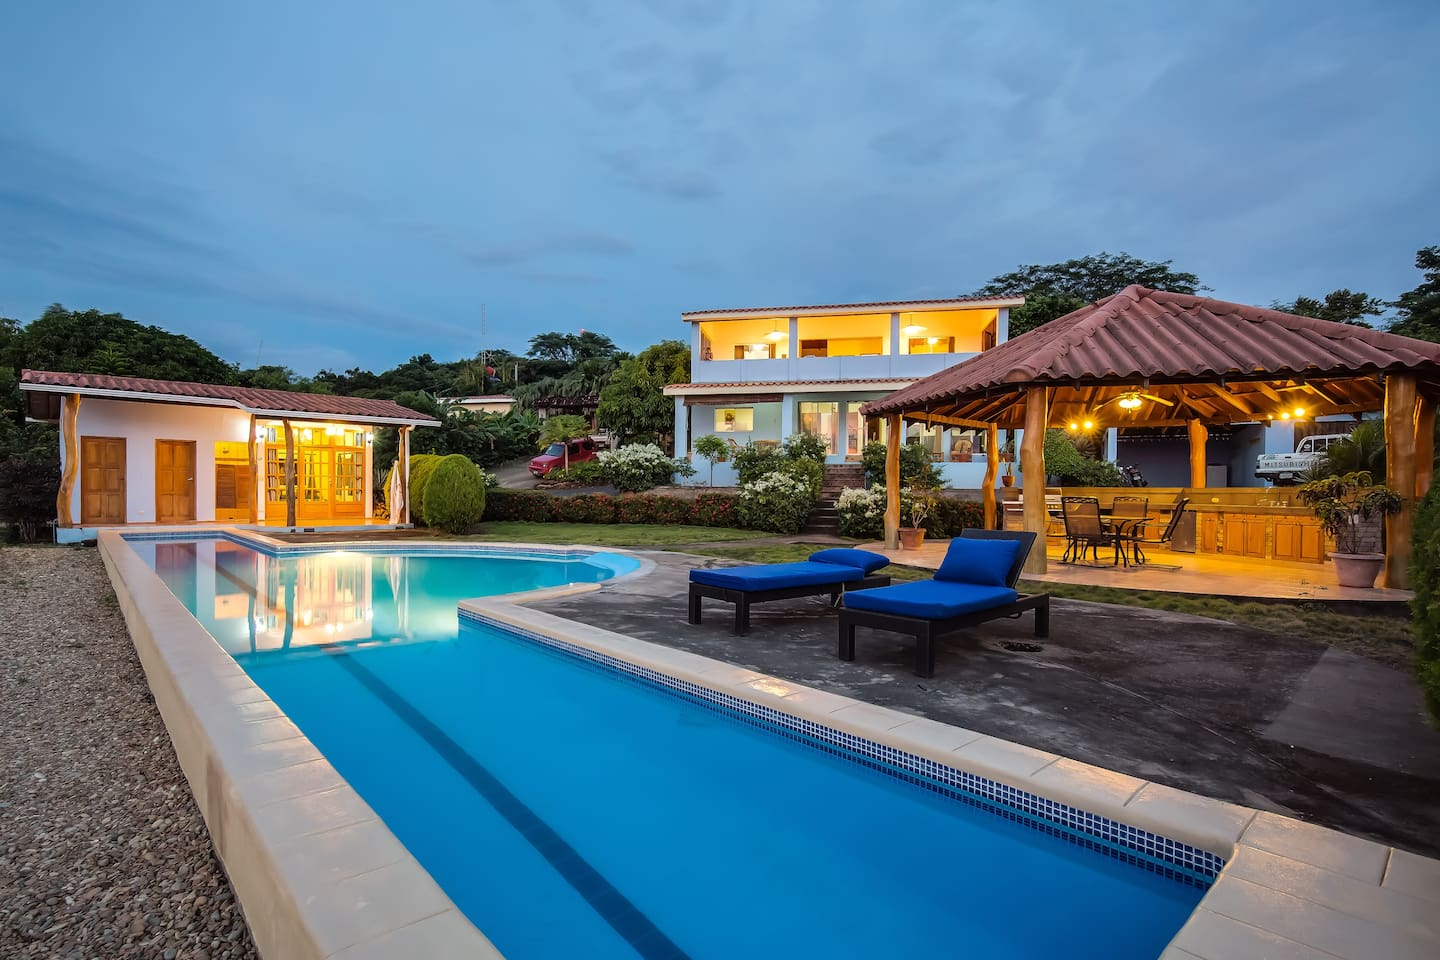 Our expansive property includes a two story main home, pool house and outdoor rancho with BBQ